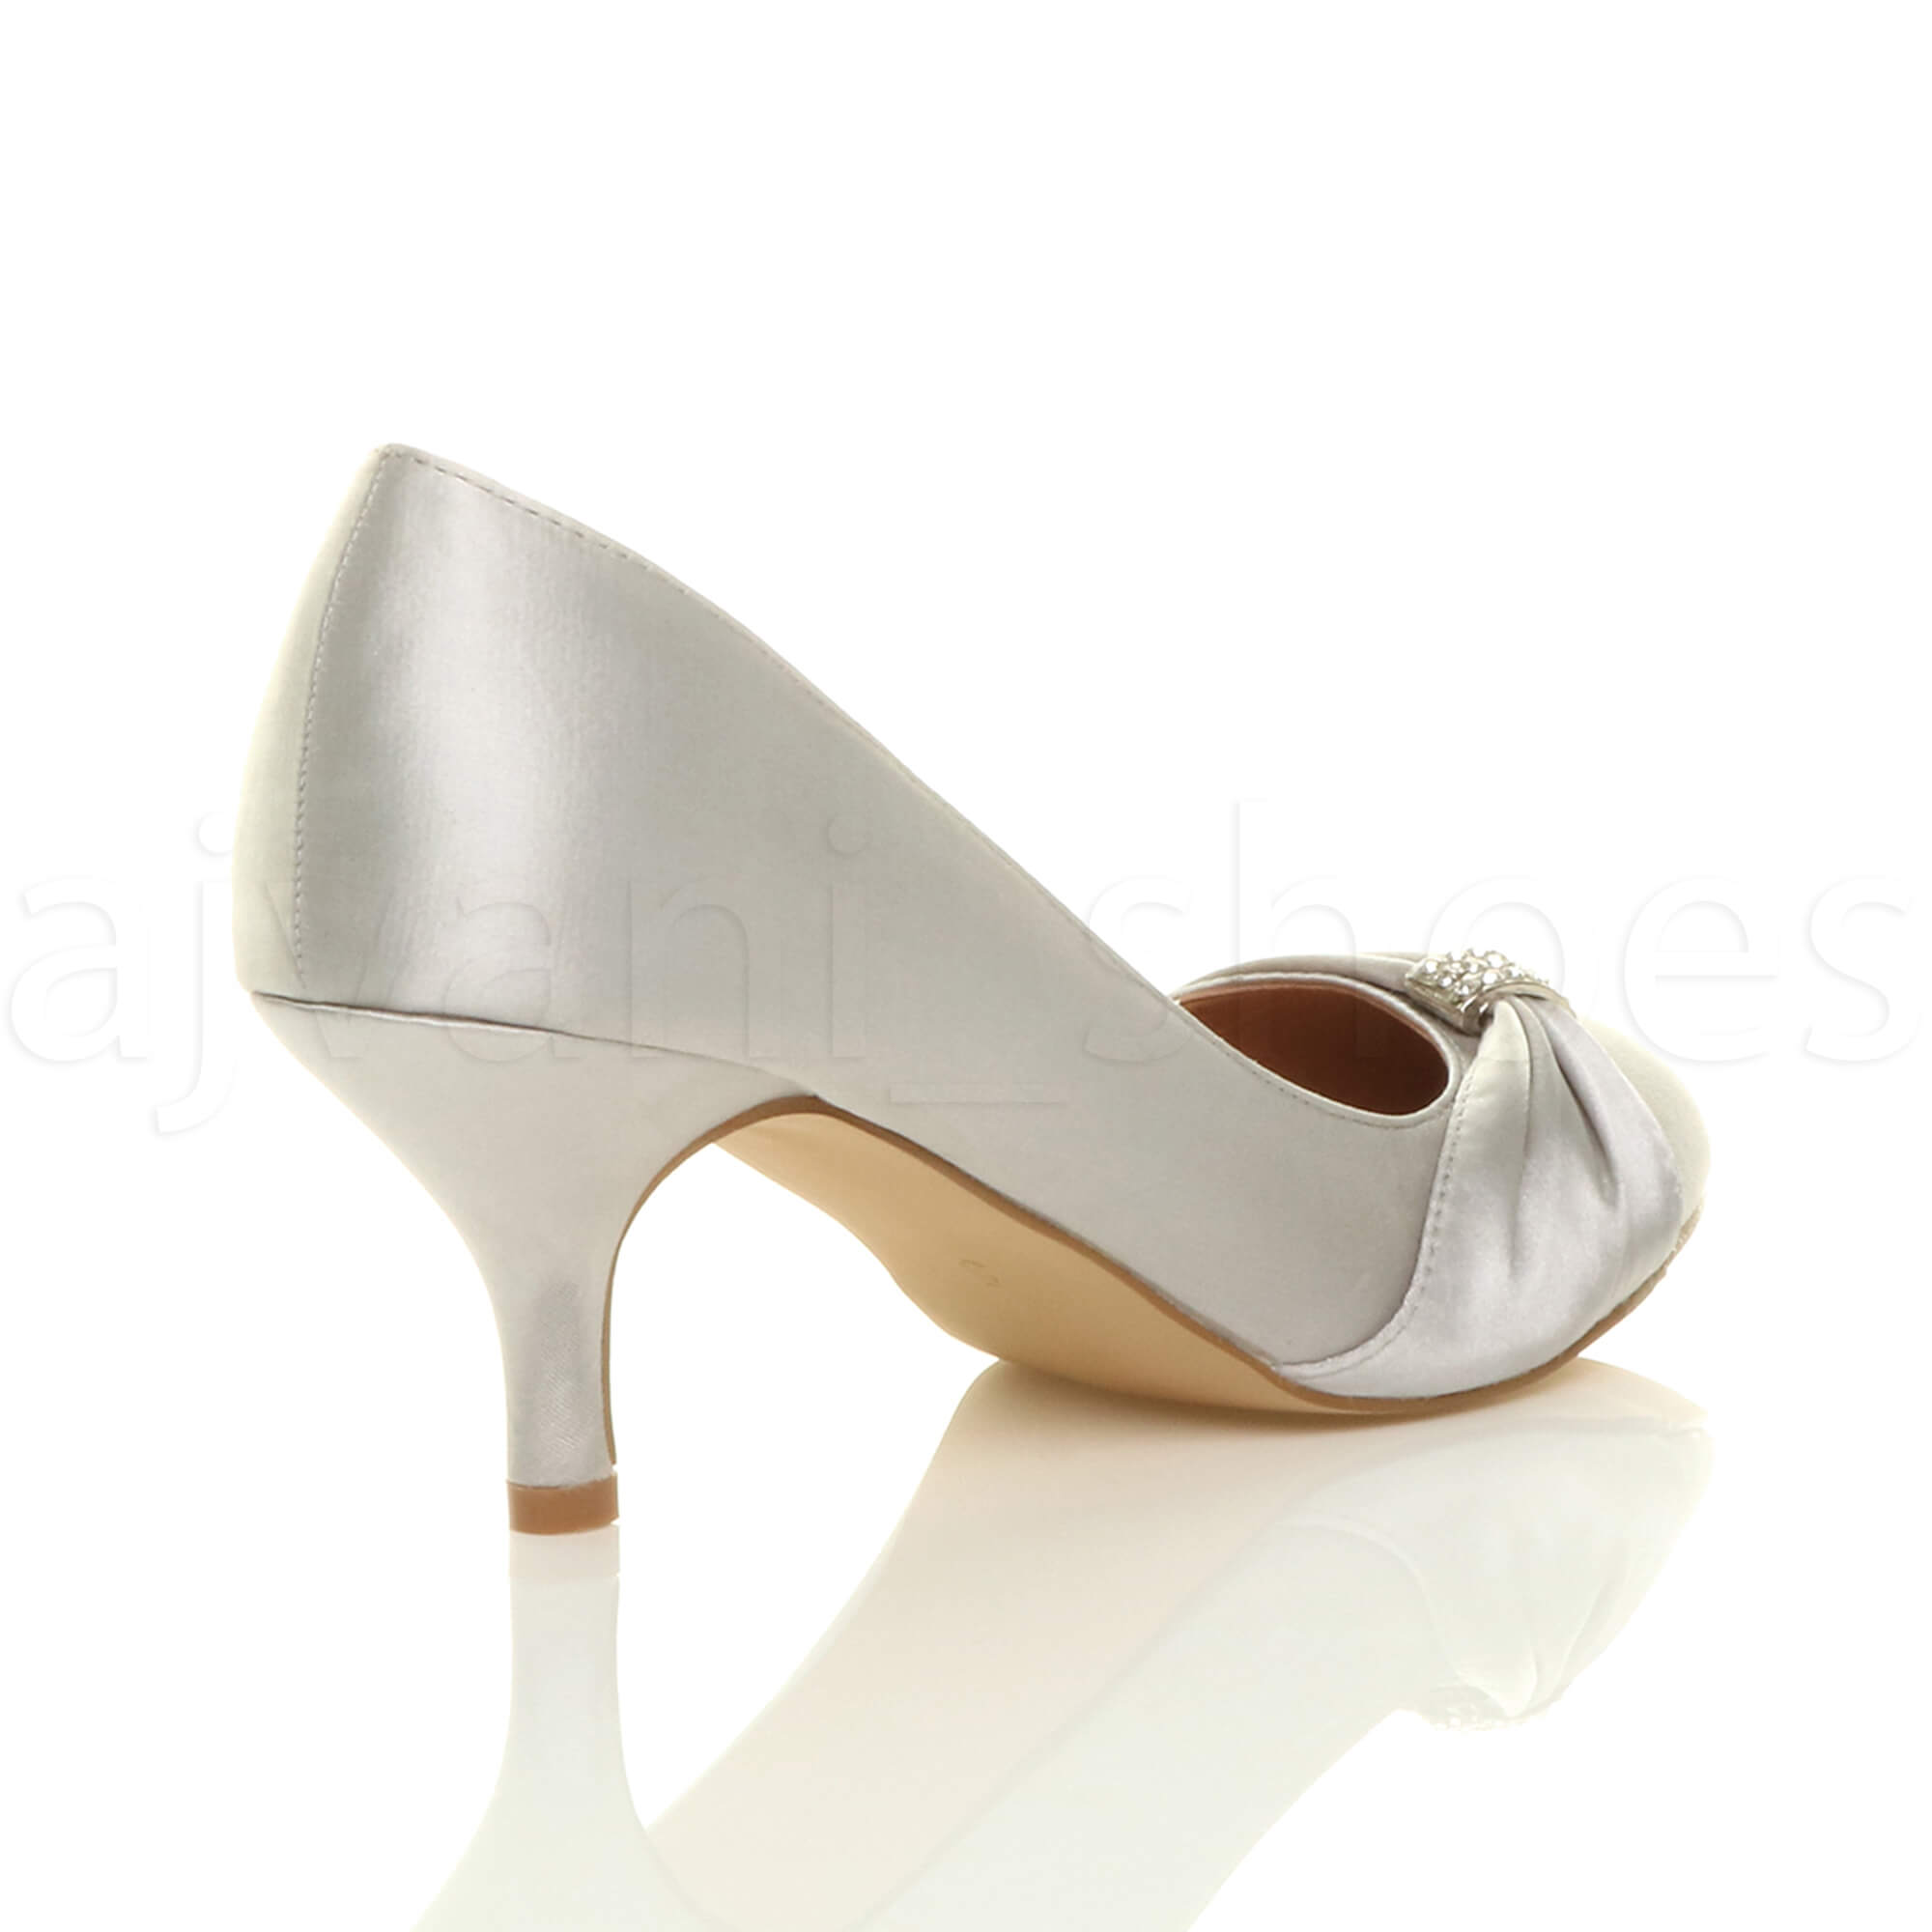 WOMENS-LADIES-MID-HEEL-RUCHED-DIAMANTE-WEDDING-PROM-EVENING-COURT-SHOES-SIZE thumbnail 93